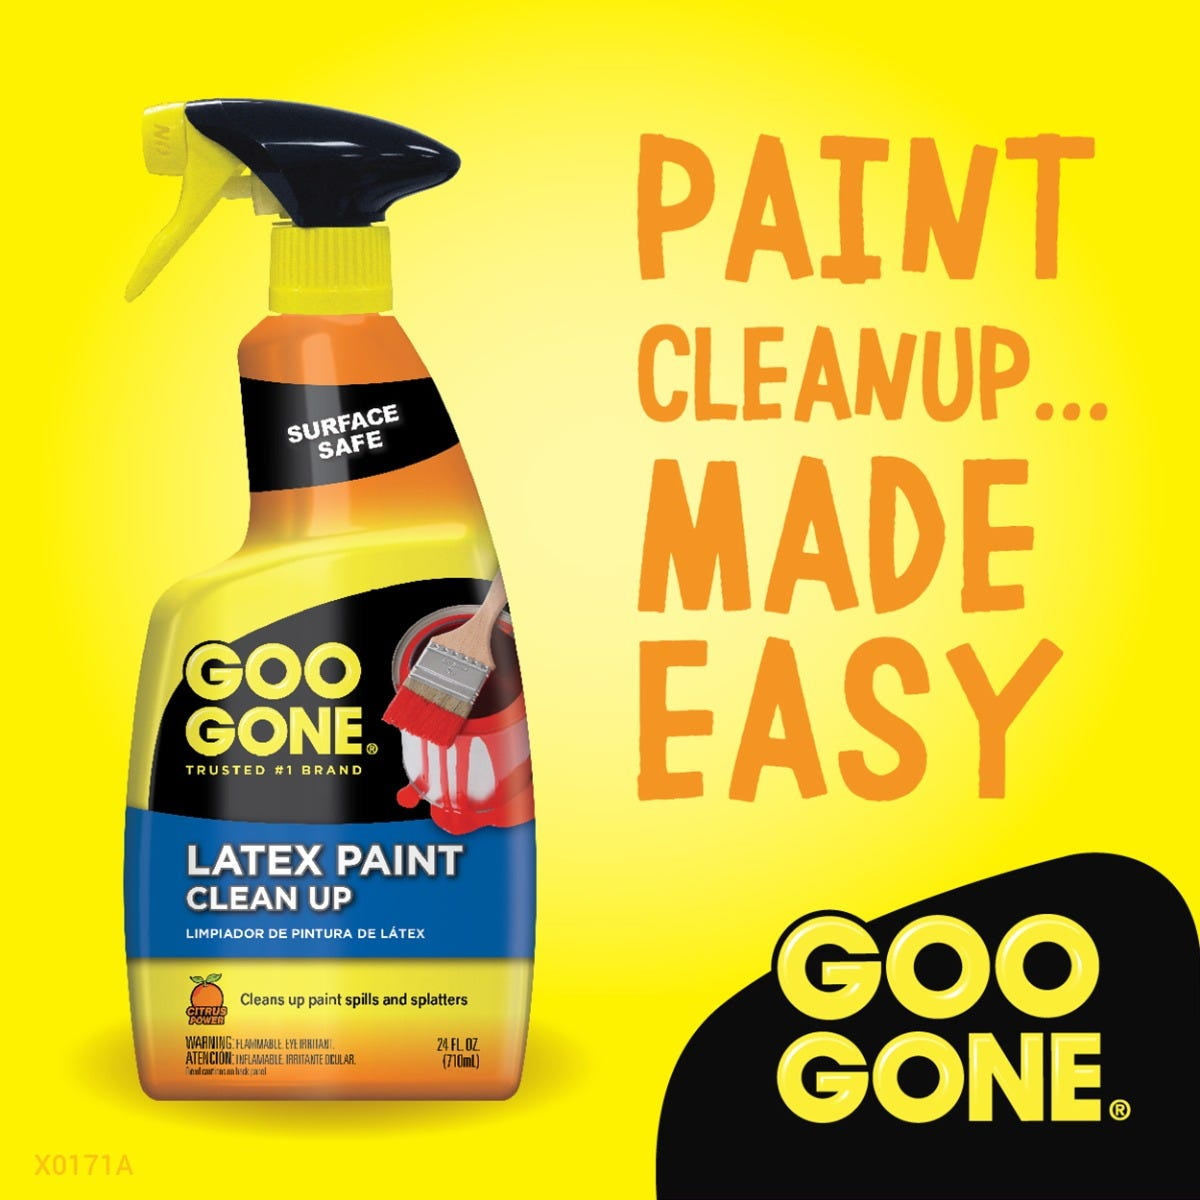 Paint Clean Up Made Easy